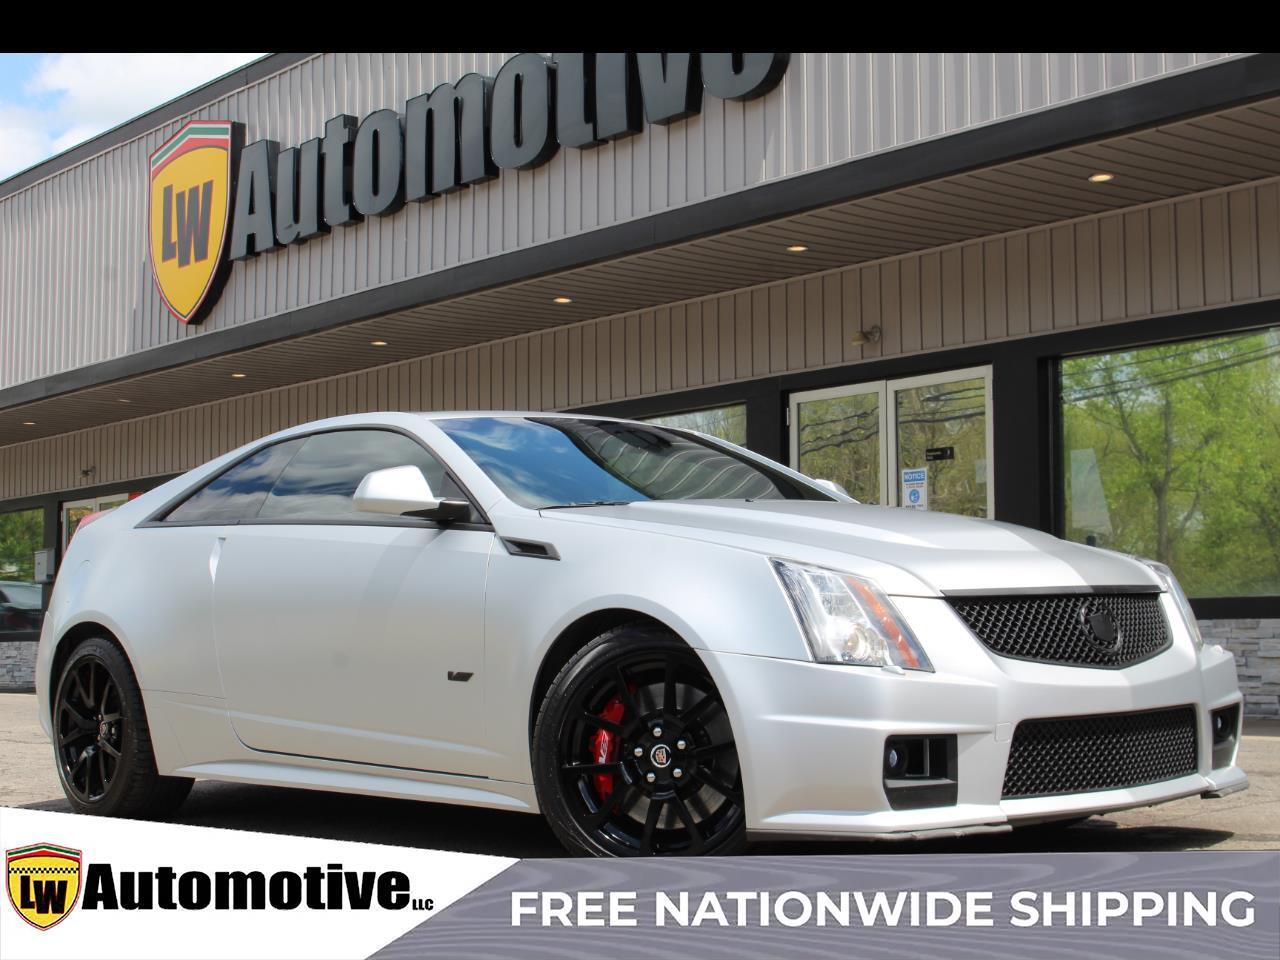 2013 Cadillac CTS-V Coupe 2dr Cpe